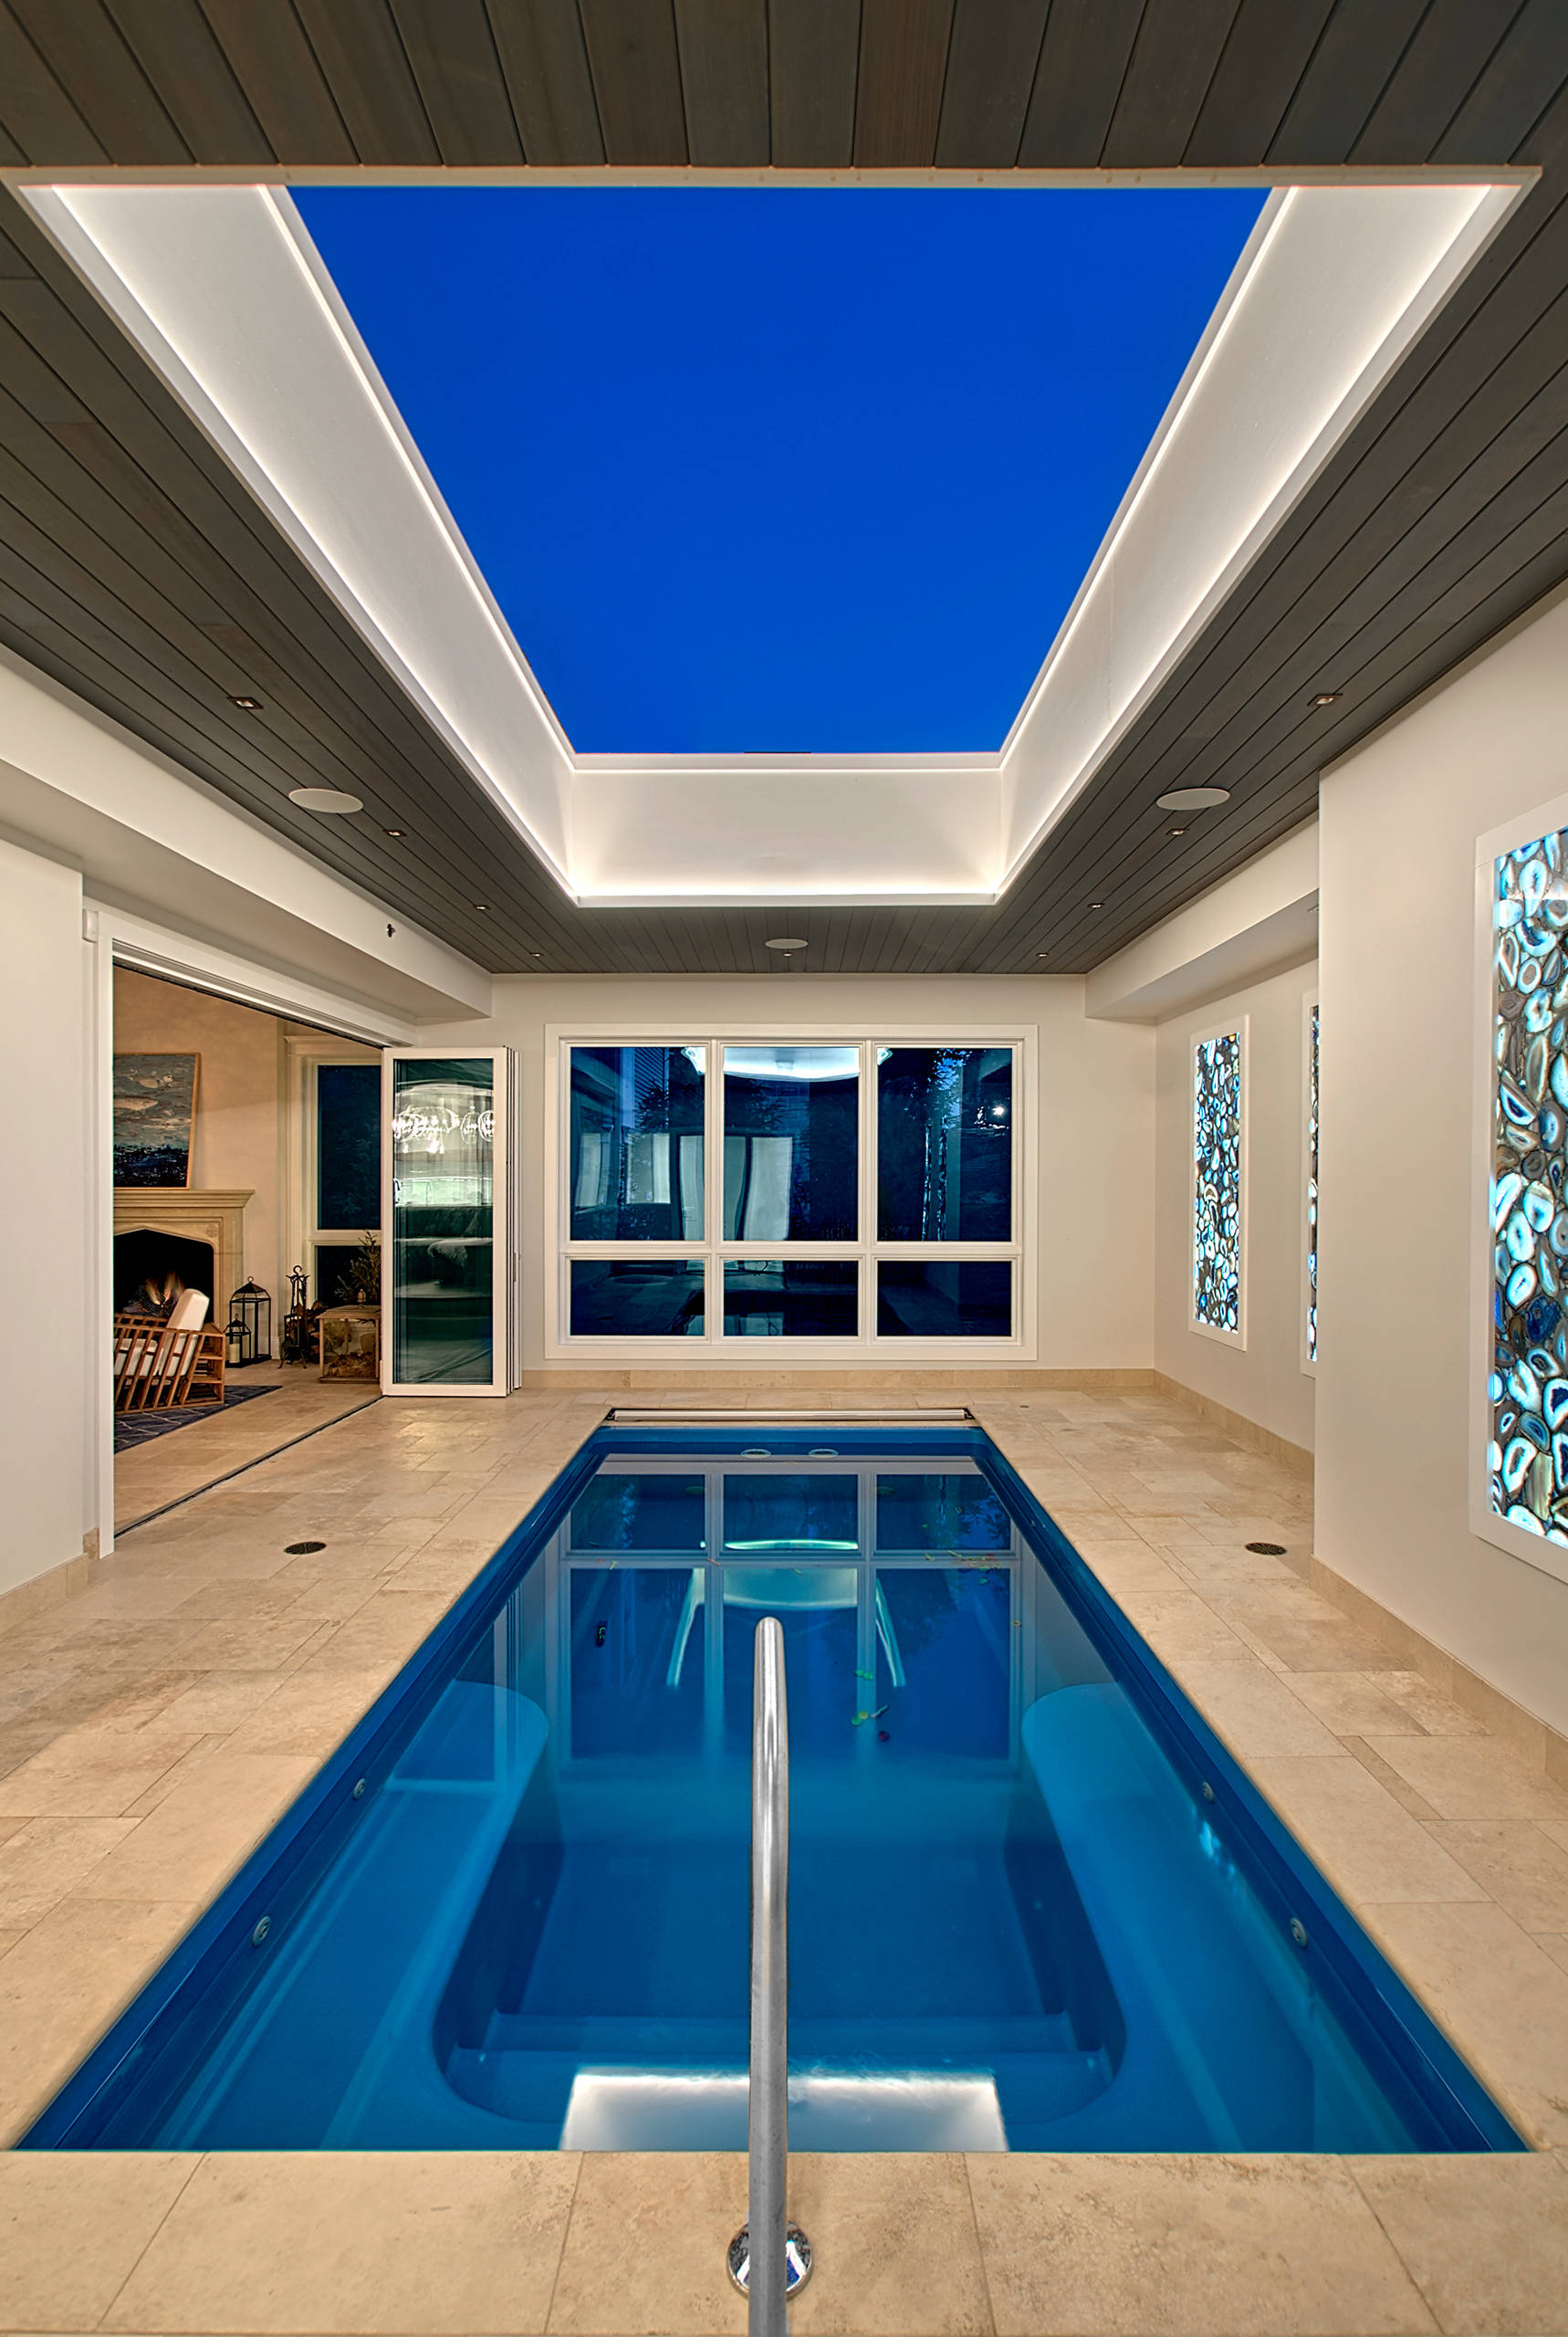 75 Beautiful Indoor Pool House Pictures Ideas November 2020 Houzz